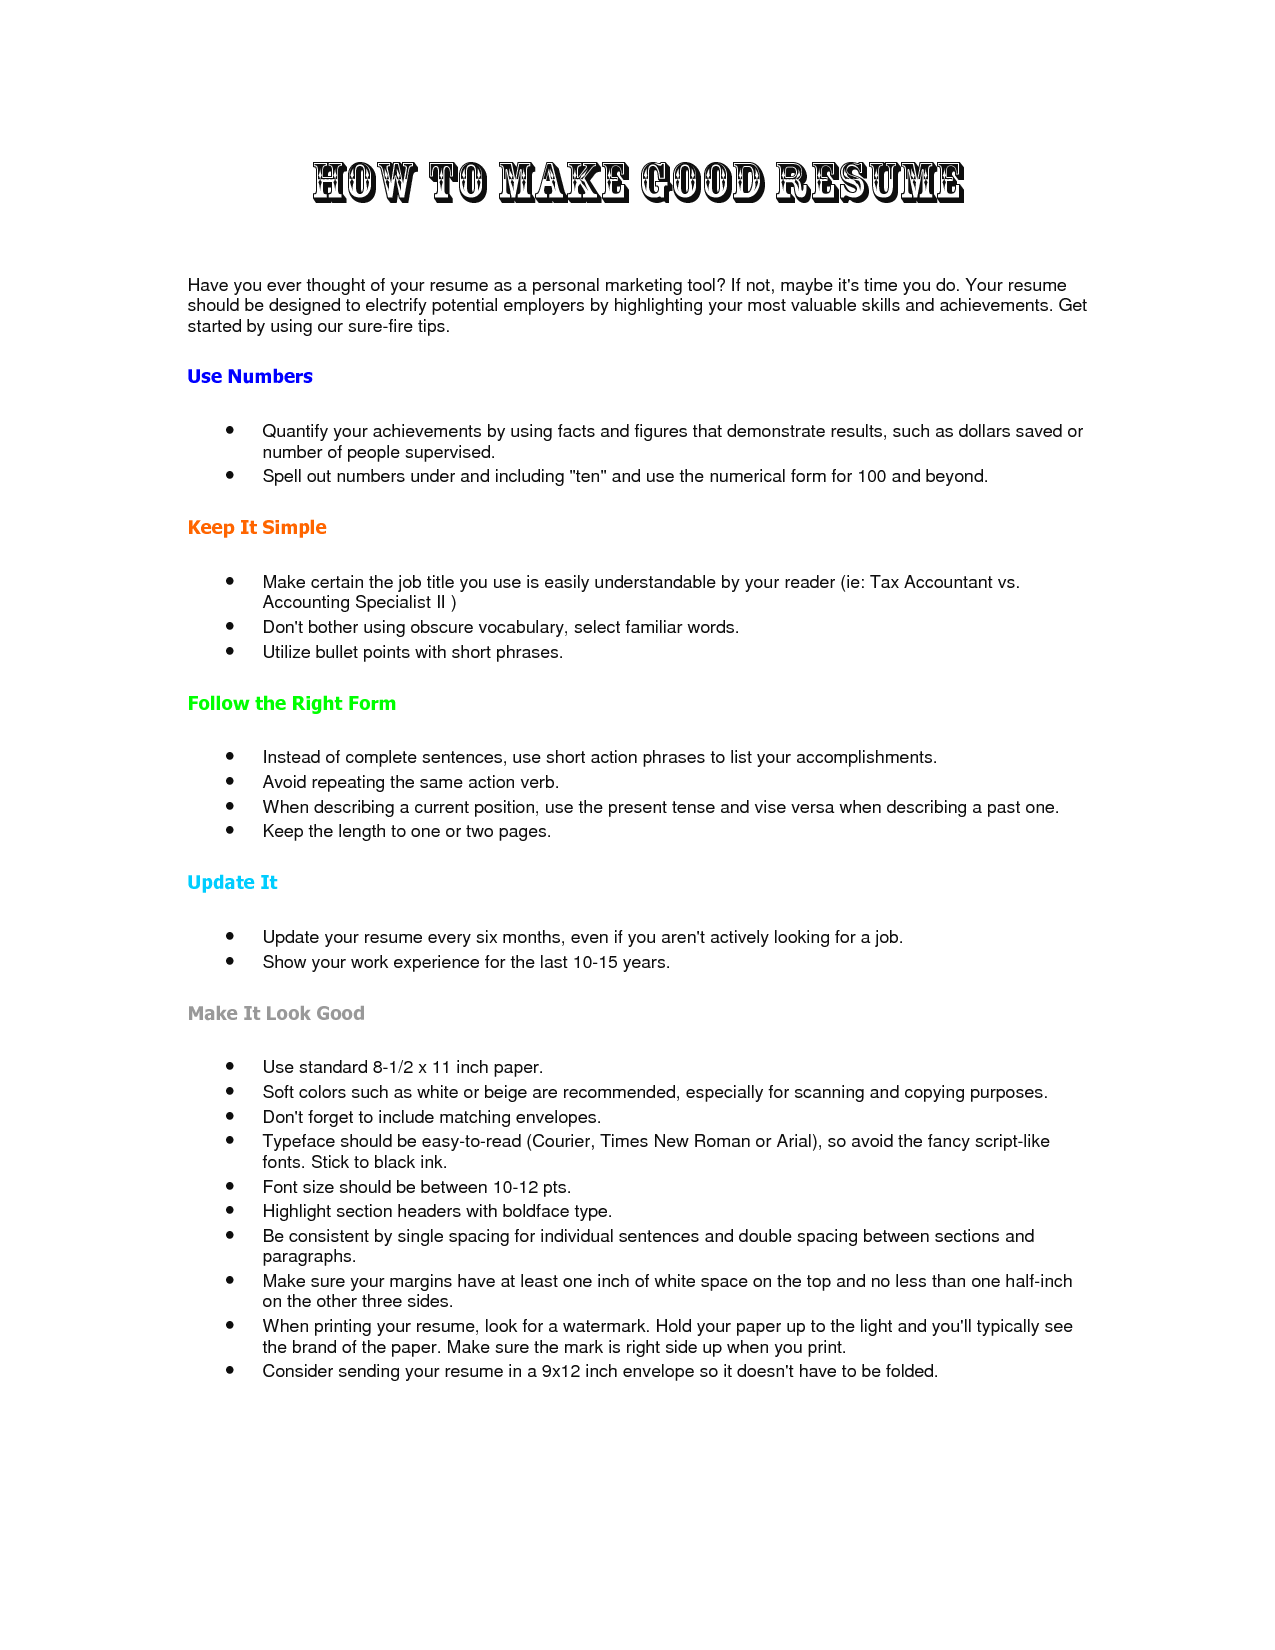 How To Make Great Resume Make A Good Resumes April Mydearest Co